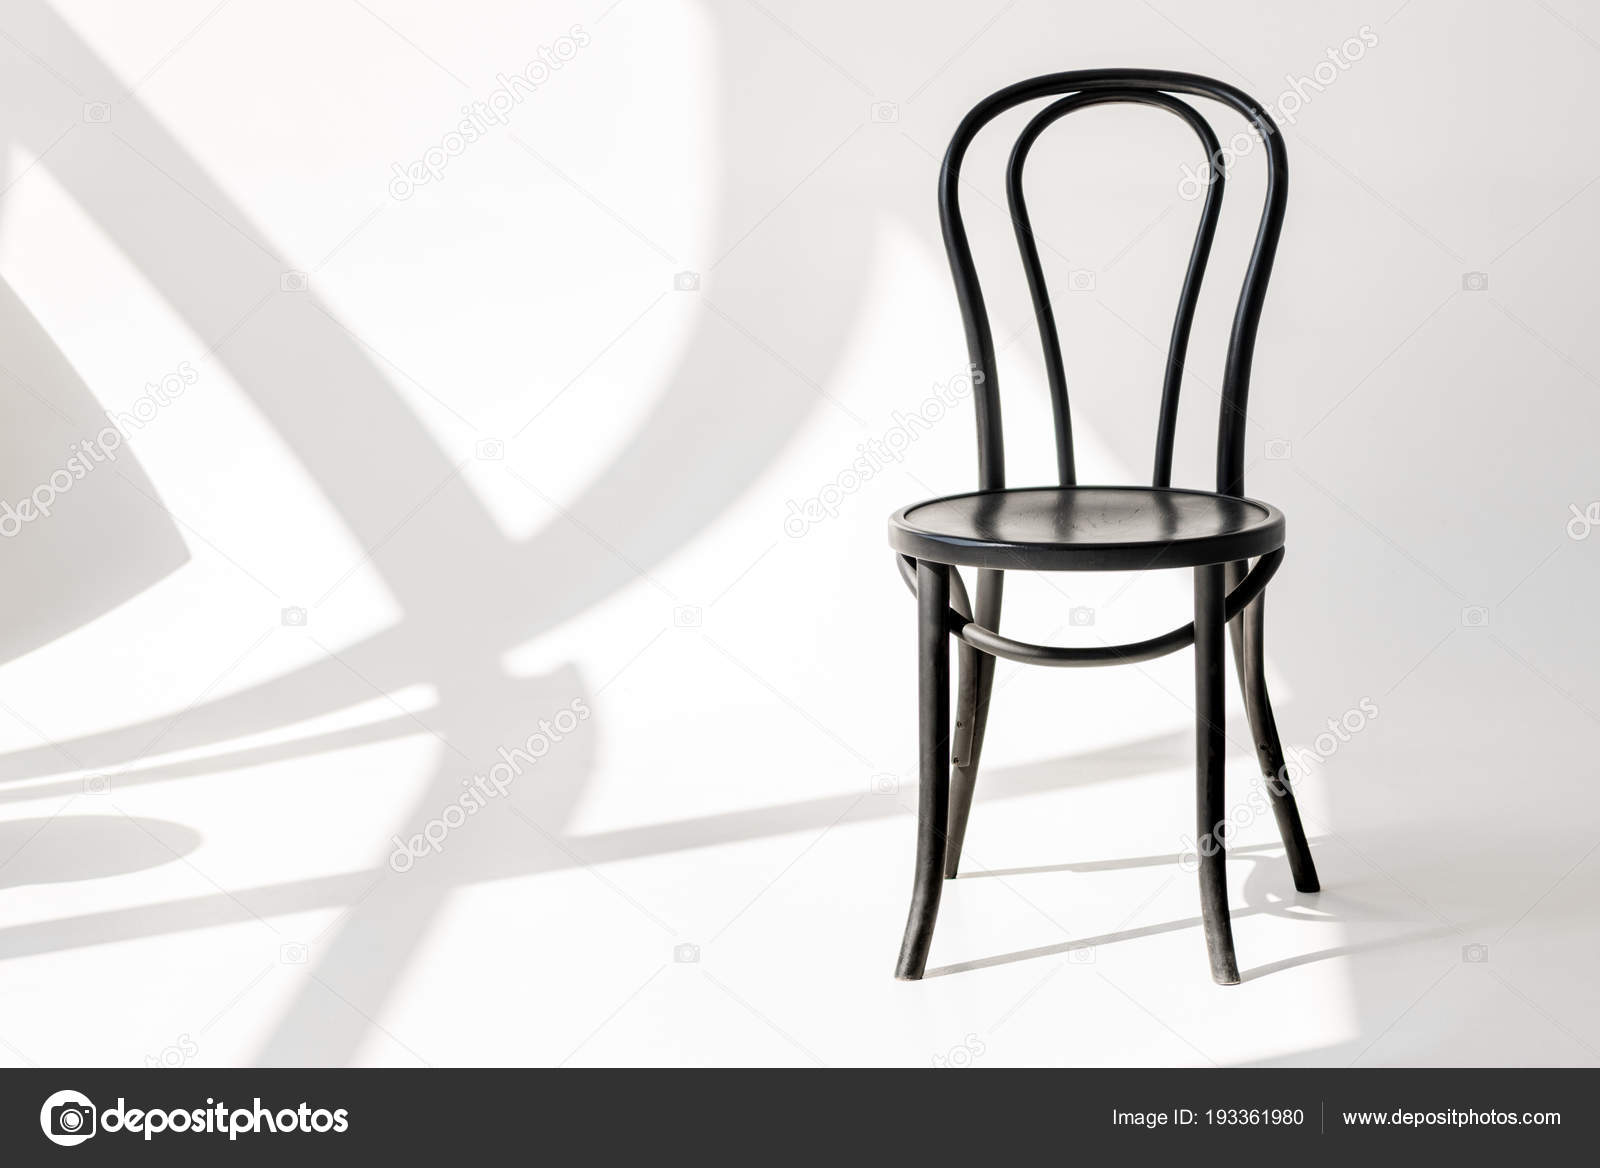 Close Up View Of Black Wooden Chair On Grey Backdrop With Shadows U2014 Photo  By ViktoriaSapata